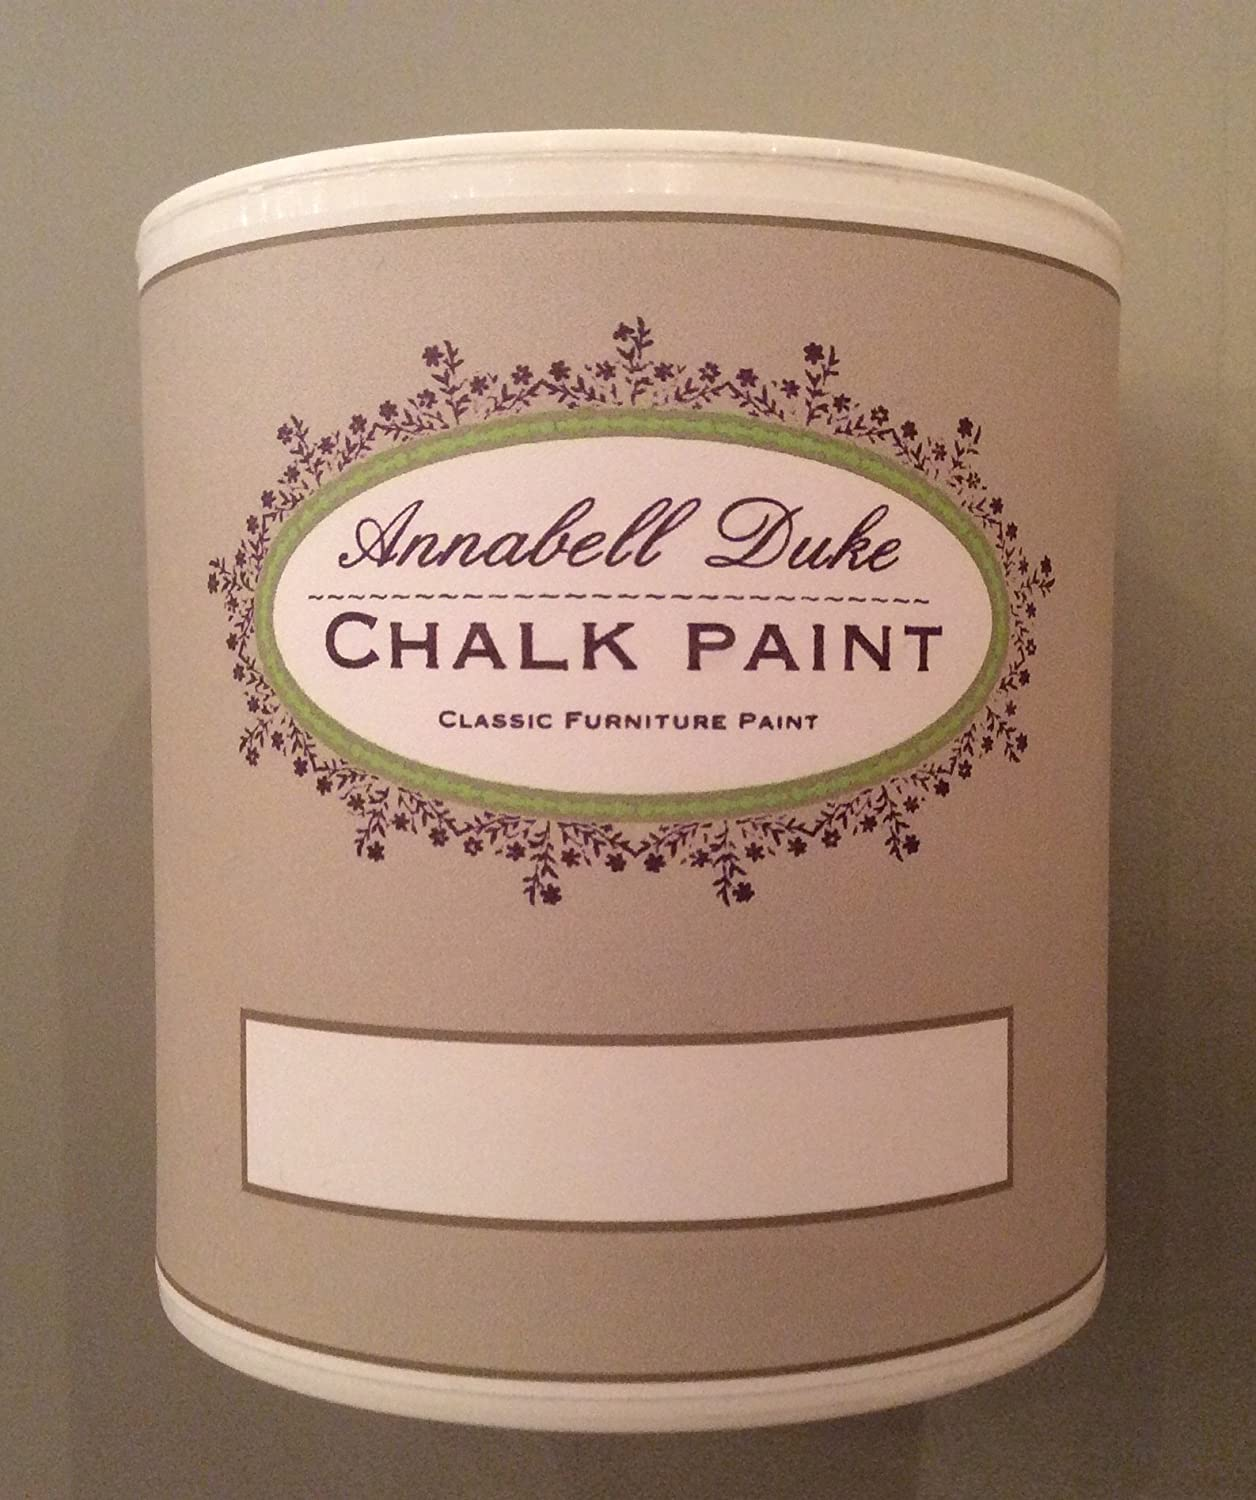 Chic Blue Paint Chic Furniture Paint by